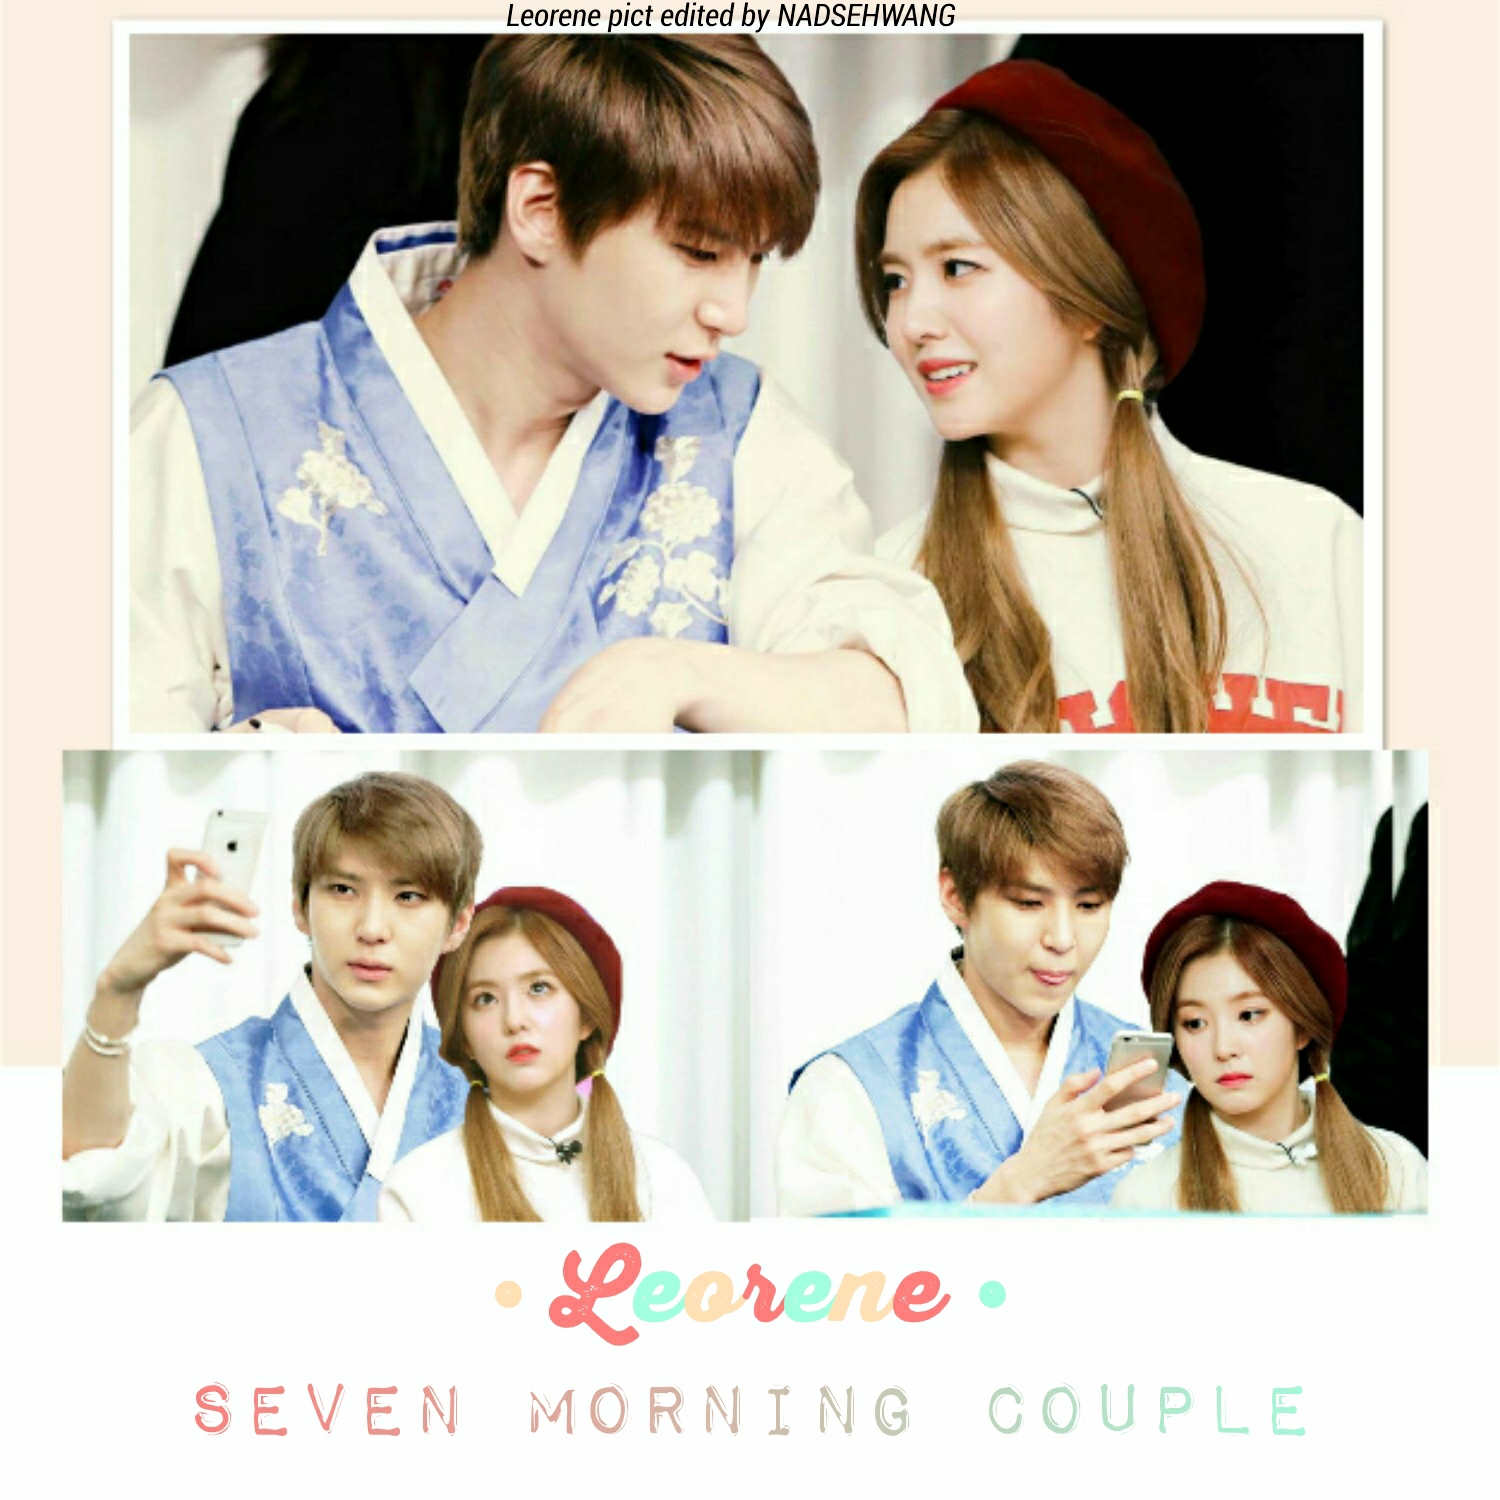 Ficlet Seven Morning Couple INDO FANFICTIONS